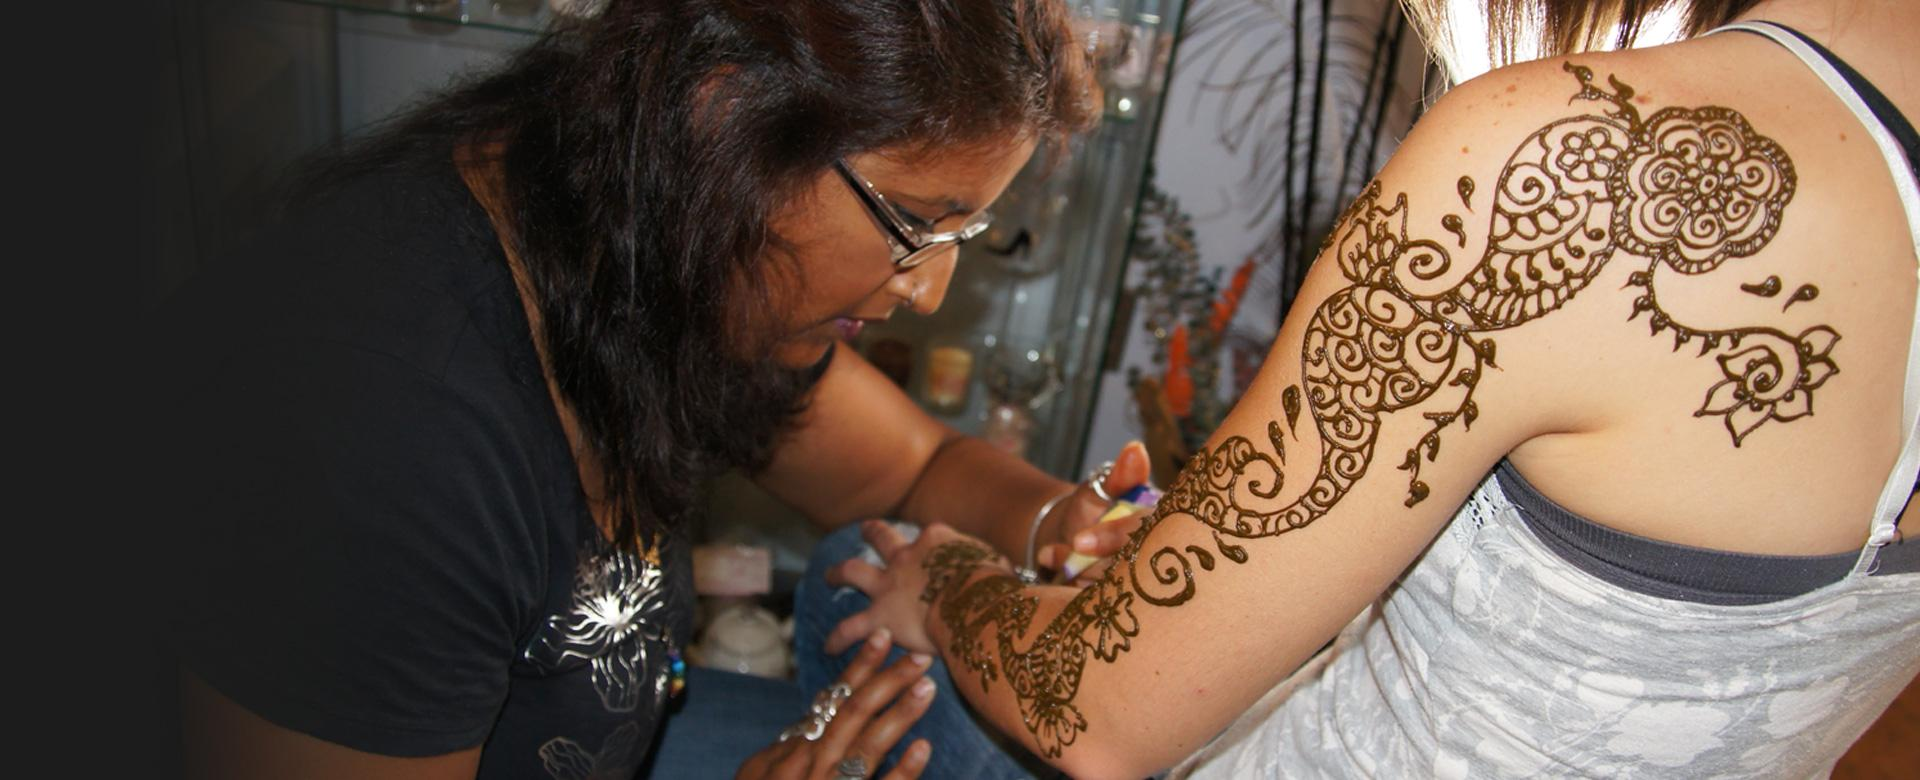 talented artists freehand our designs